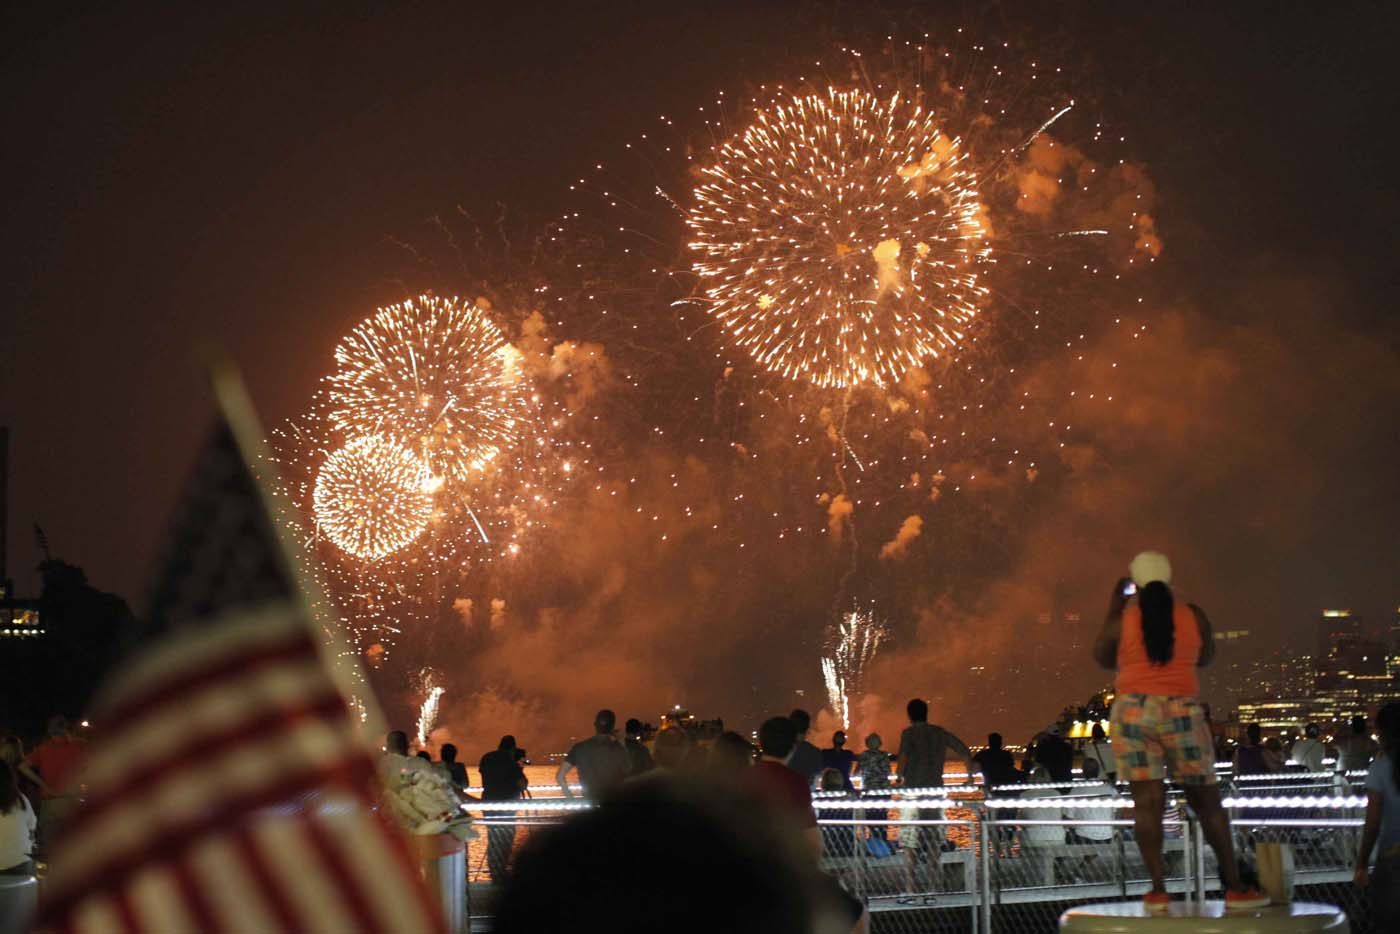 HOBOKEN, NJ - JULY 04: People look at fireworks exploding over the Hudson River and the skyline of New York during the Macy's Independence Day celebration as seen from Hoboken, New Jersey. (Eduardo Munoz/Reuters)